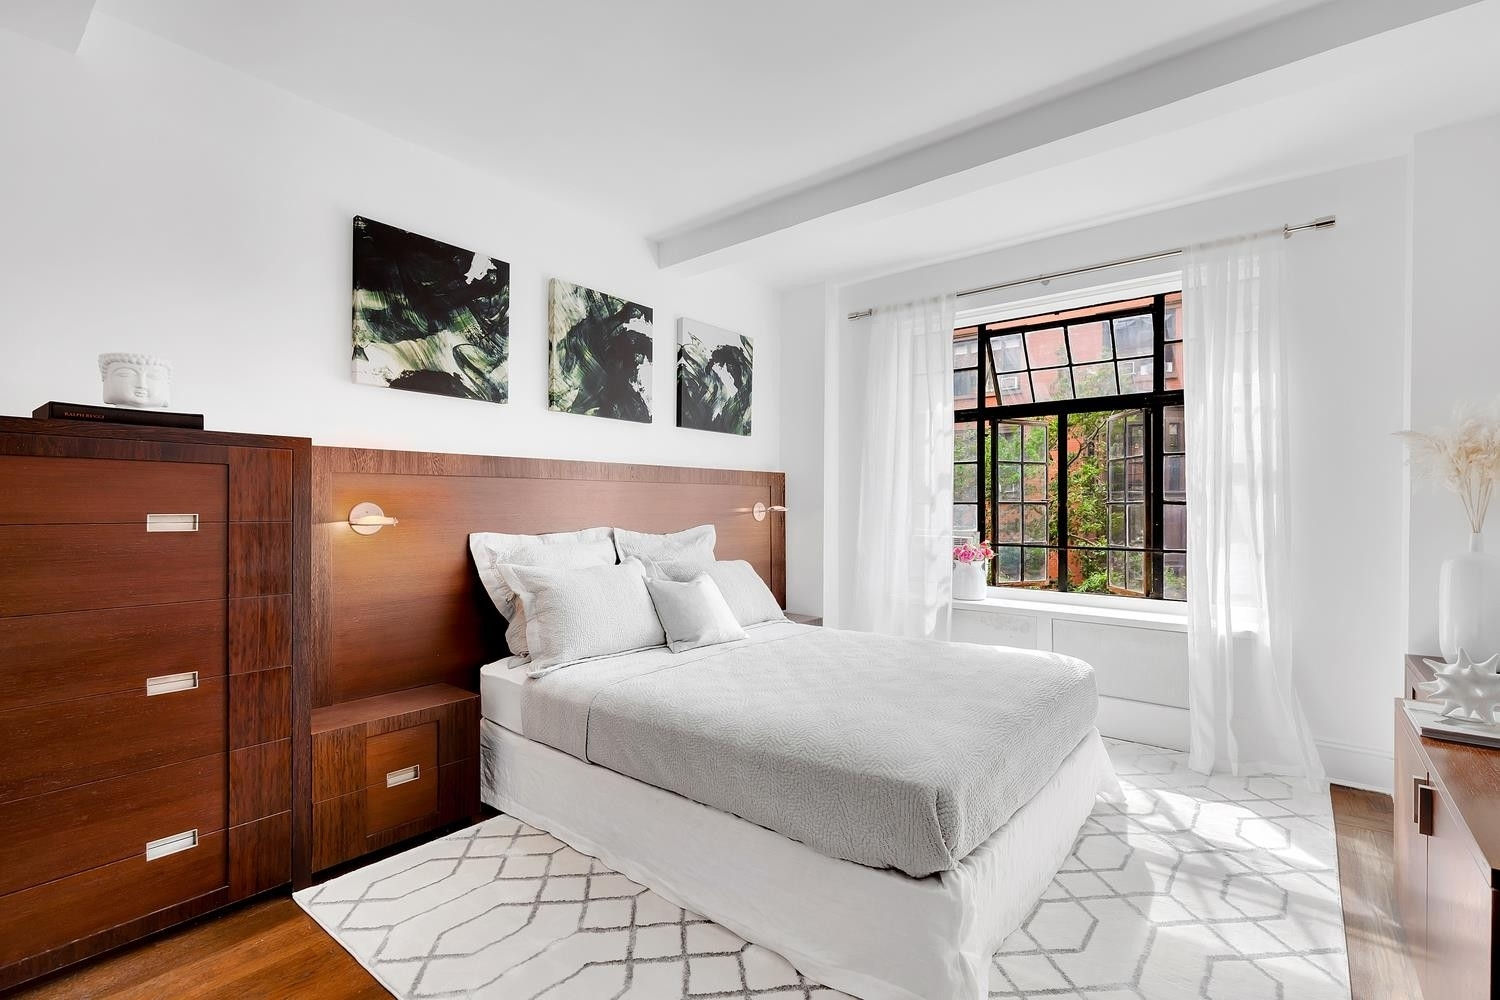 9. Co-op Properties for Sale at GRAMERCY OWNERS LTD, 44 Gramercy Park North, 4C Gramercy Park, New York, NY 10010